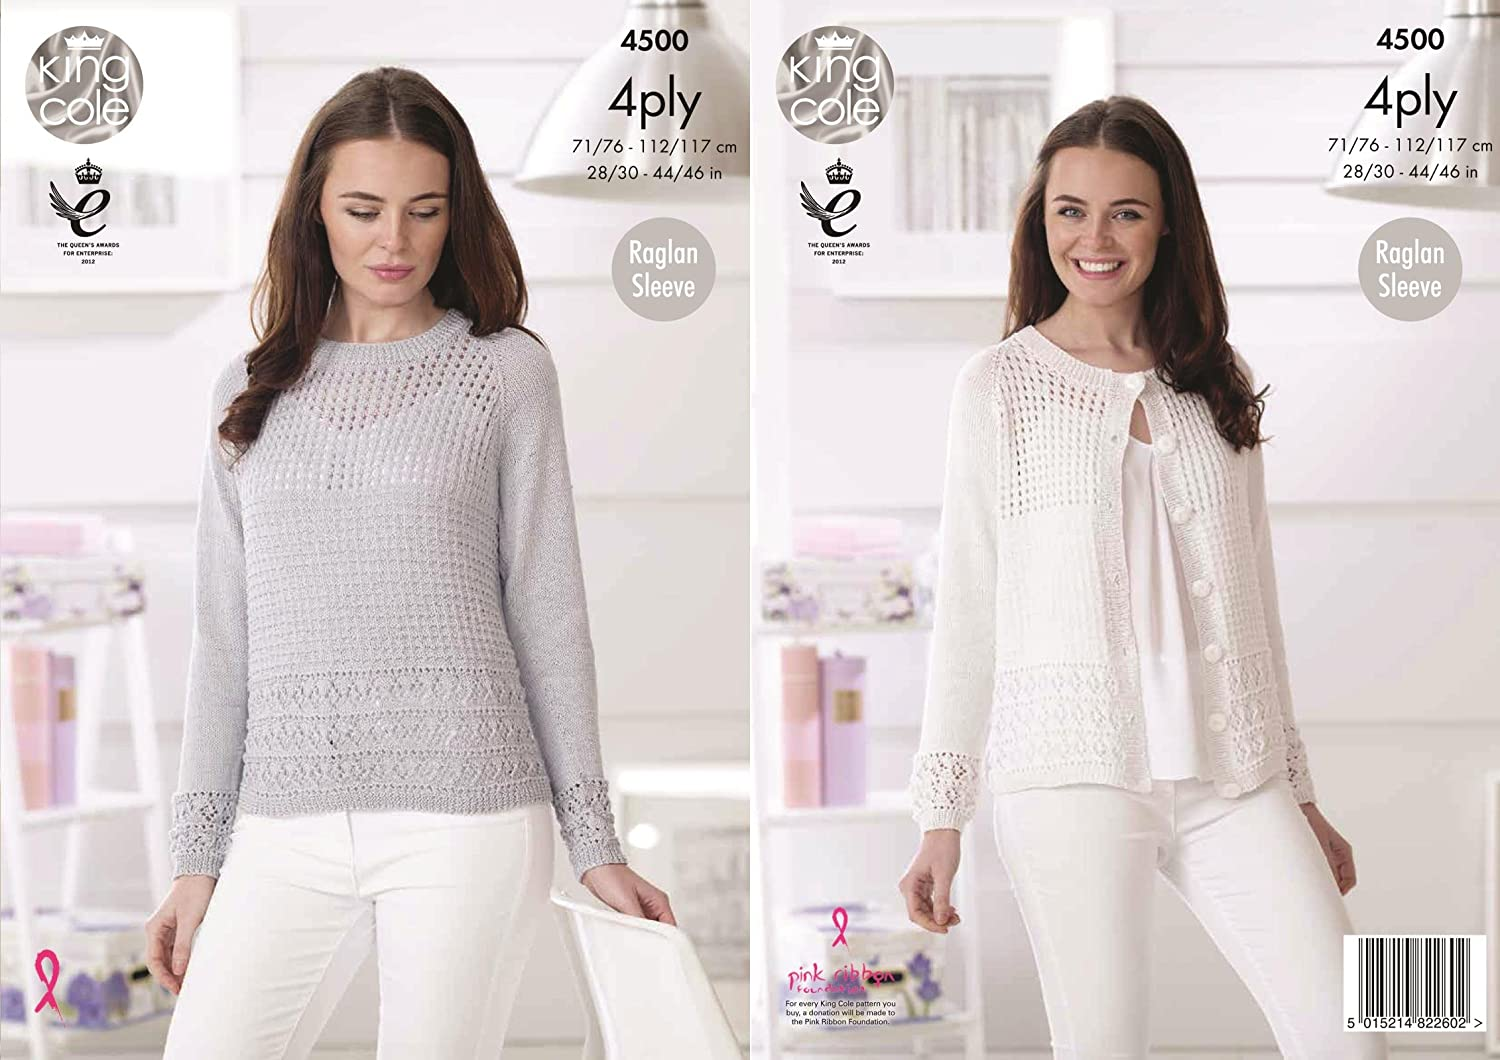 King Cole 4500 Knitting Pattern Ladies Sweater and Cardigan in Giza Cotton 4ply